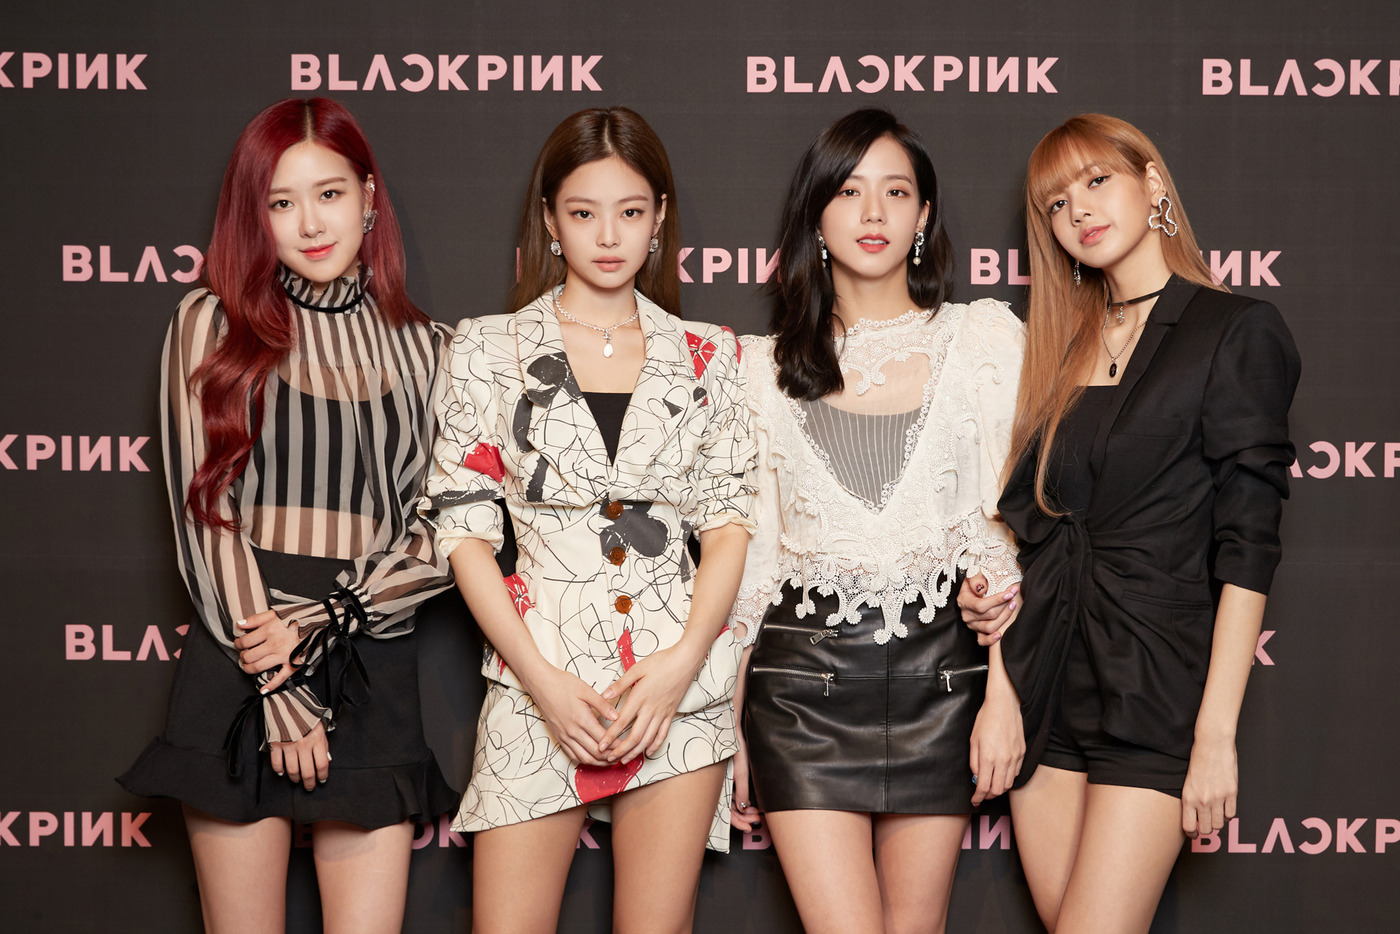 BLACKPINK to stage their eagerly anticipated